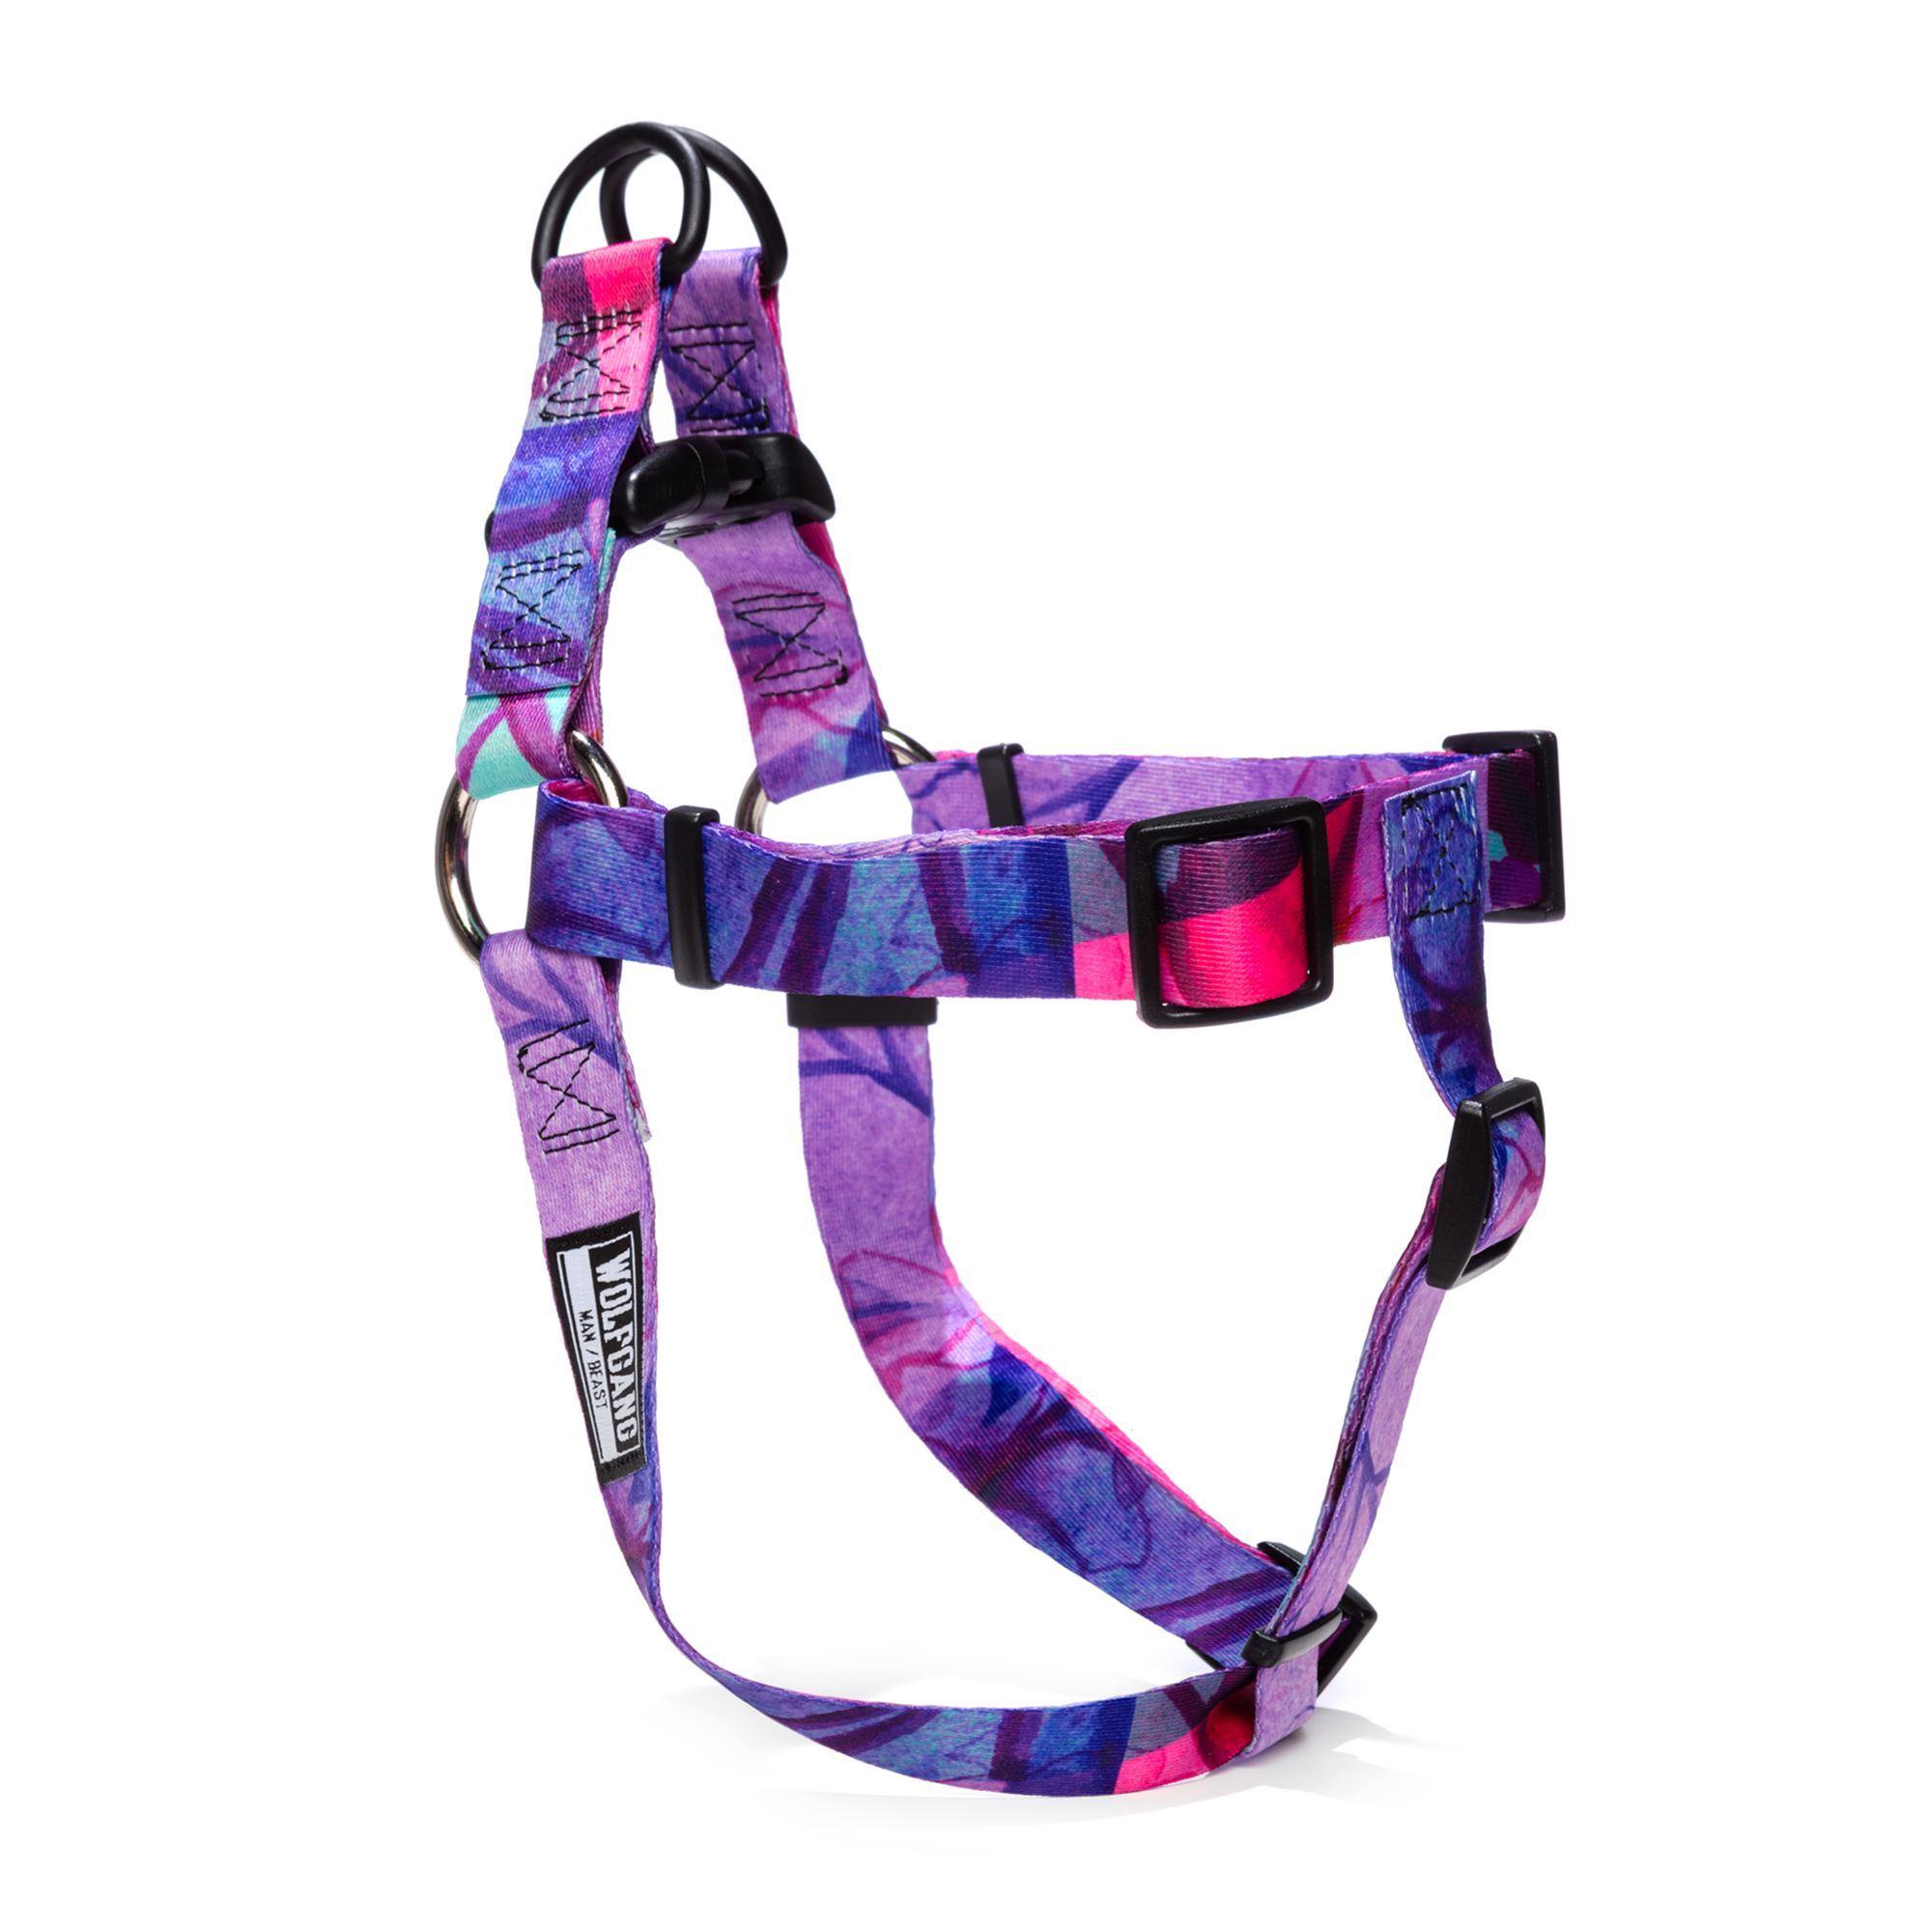 Wolfgang Man and Savage DayDream Dog Harness size: Large, Wolfgang Man & Beast